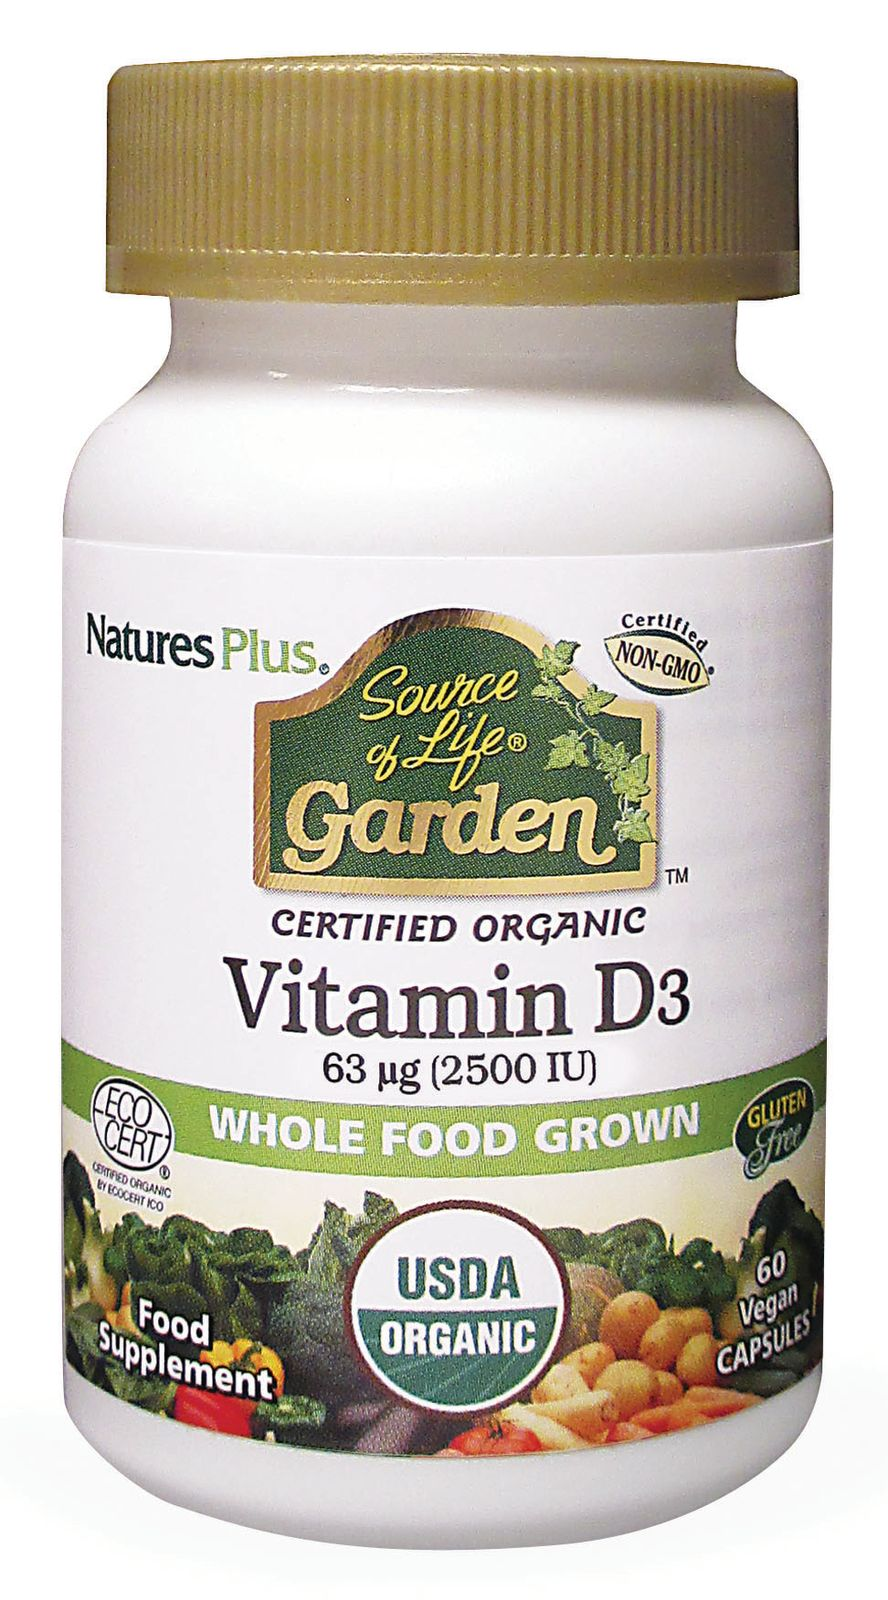 Source of Life Vitamin D3 2500iu 60's (Currently Unavailable)